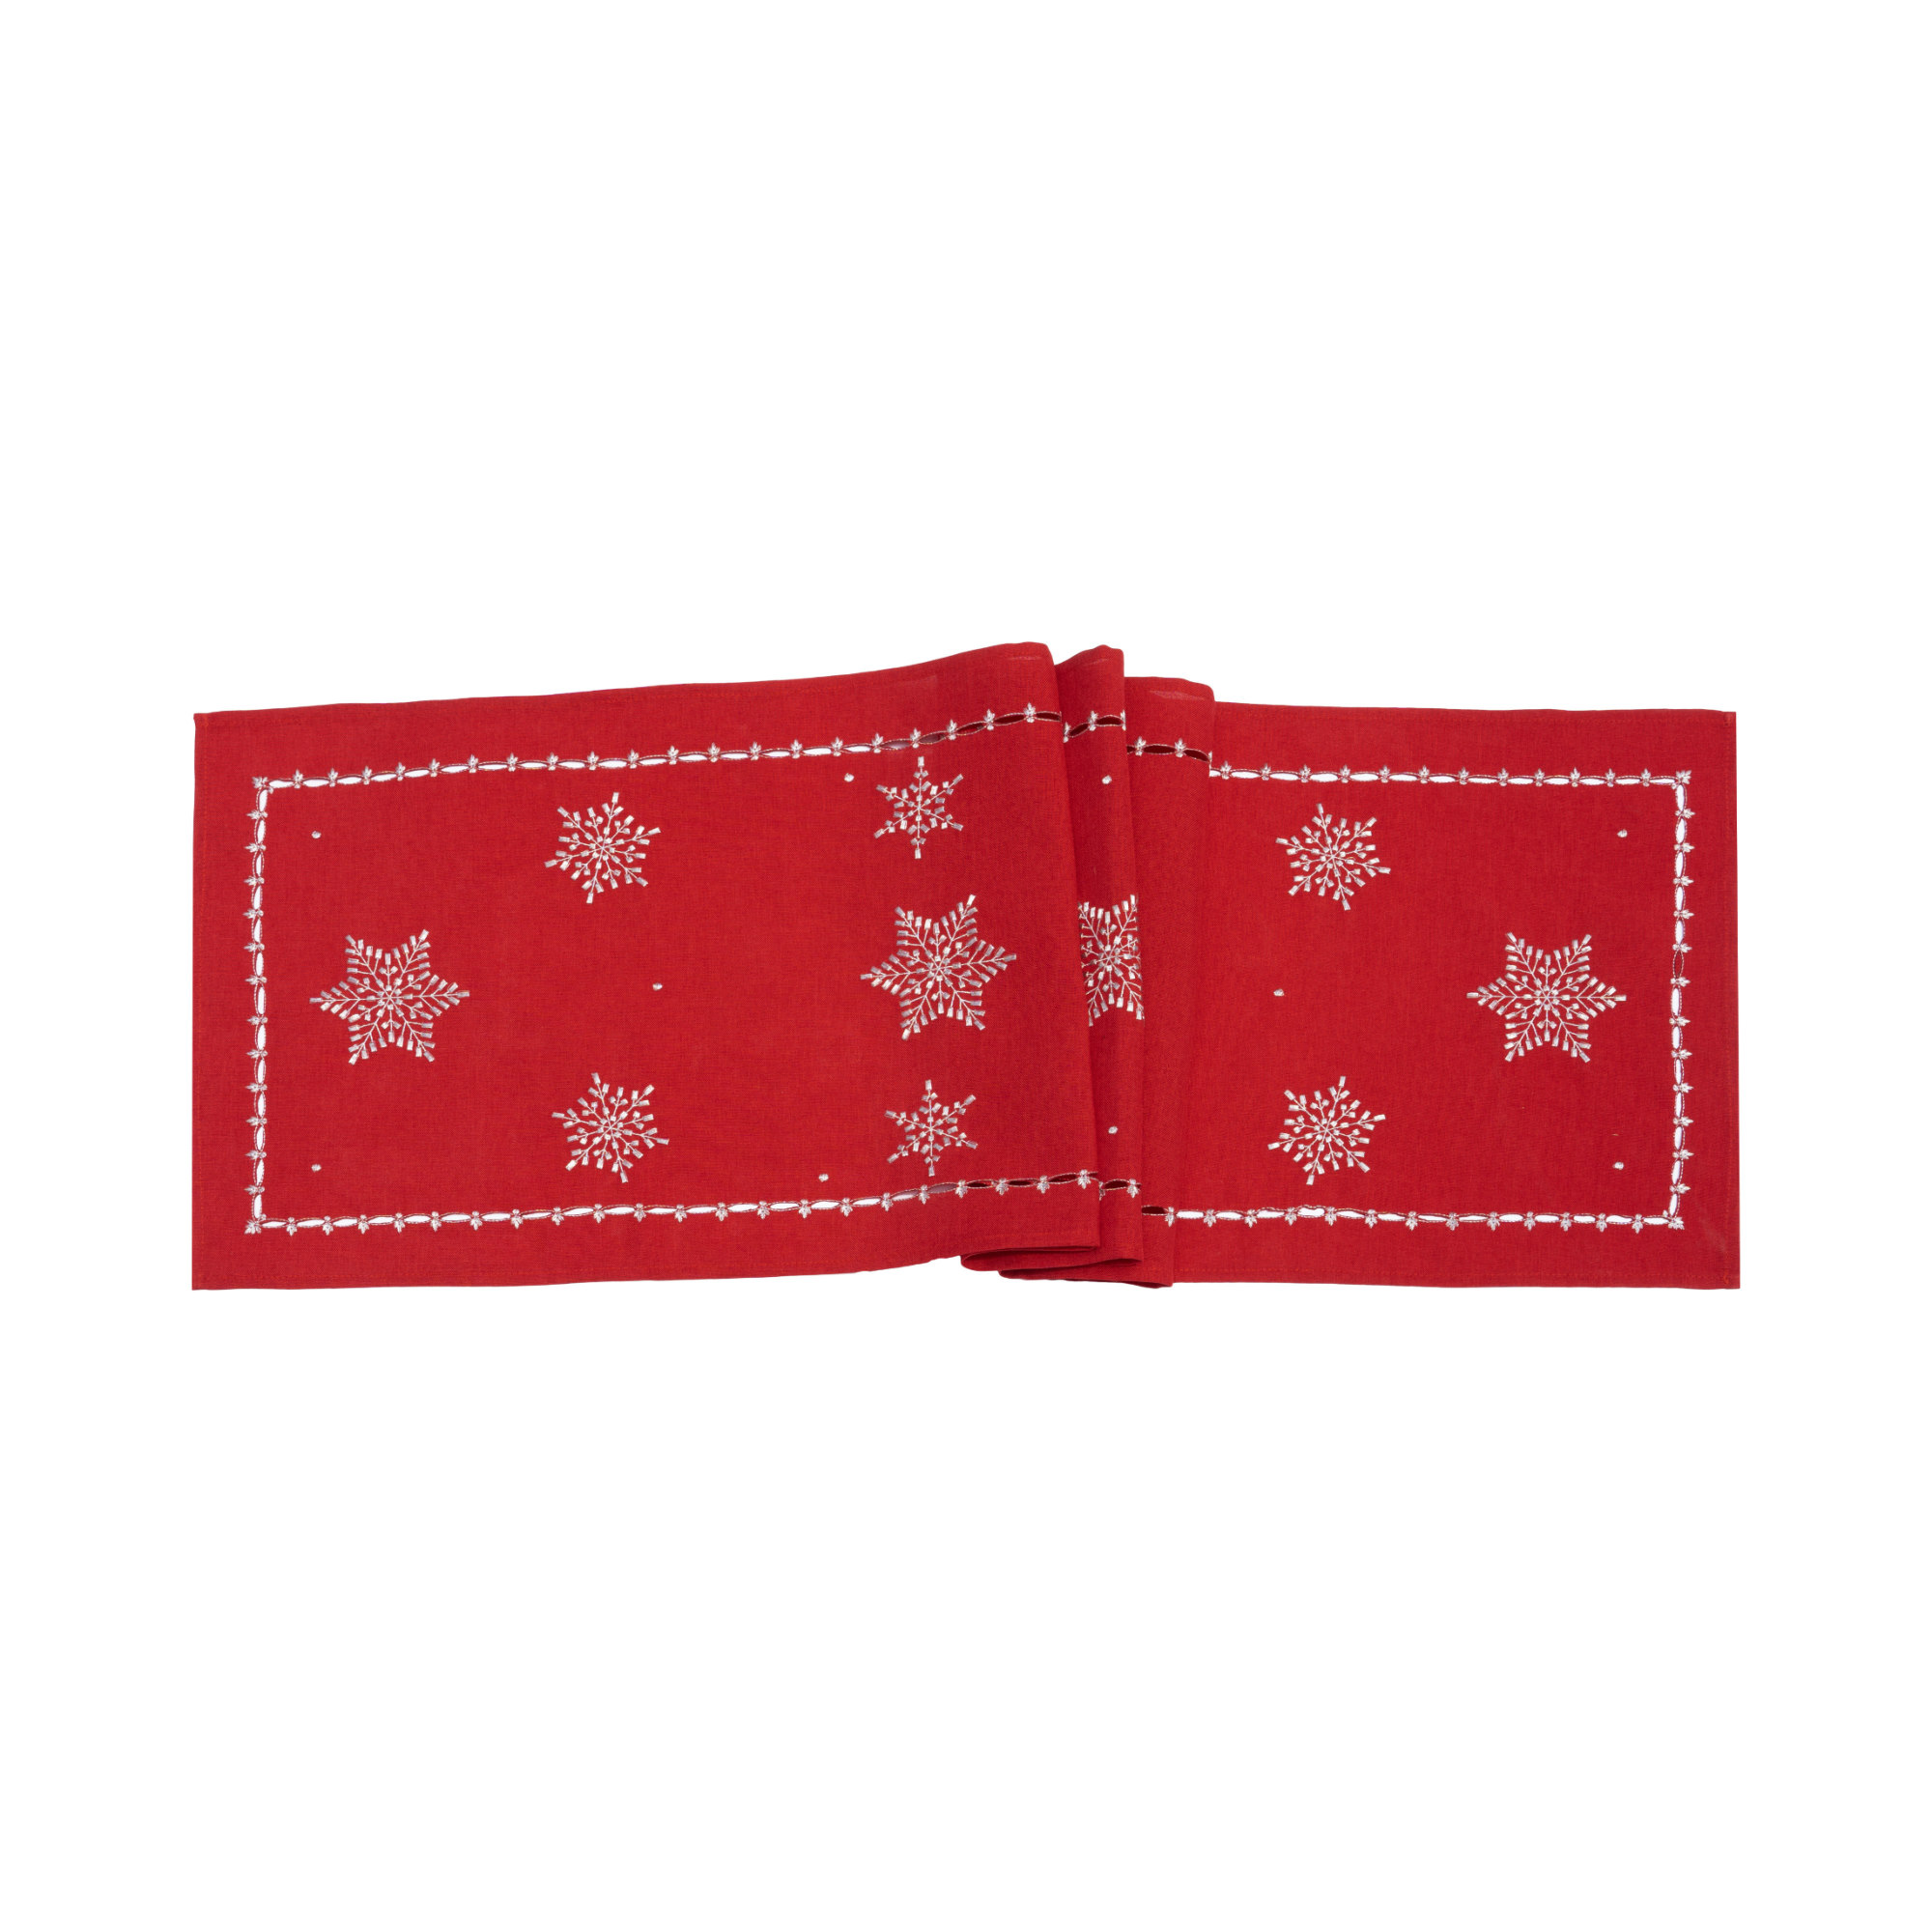 Silver Snowflakes Embroidery With Cutwork Border Table Runner/Dresser Scarf. Easy Care Polylinen Multi-Size(Red/Silver)